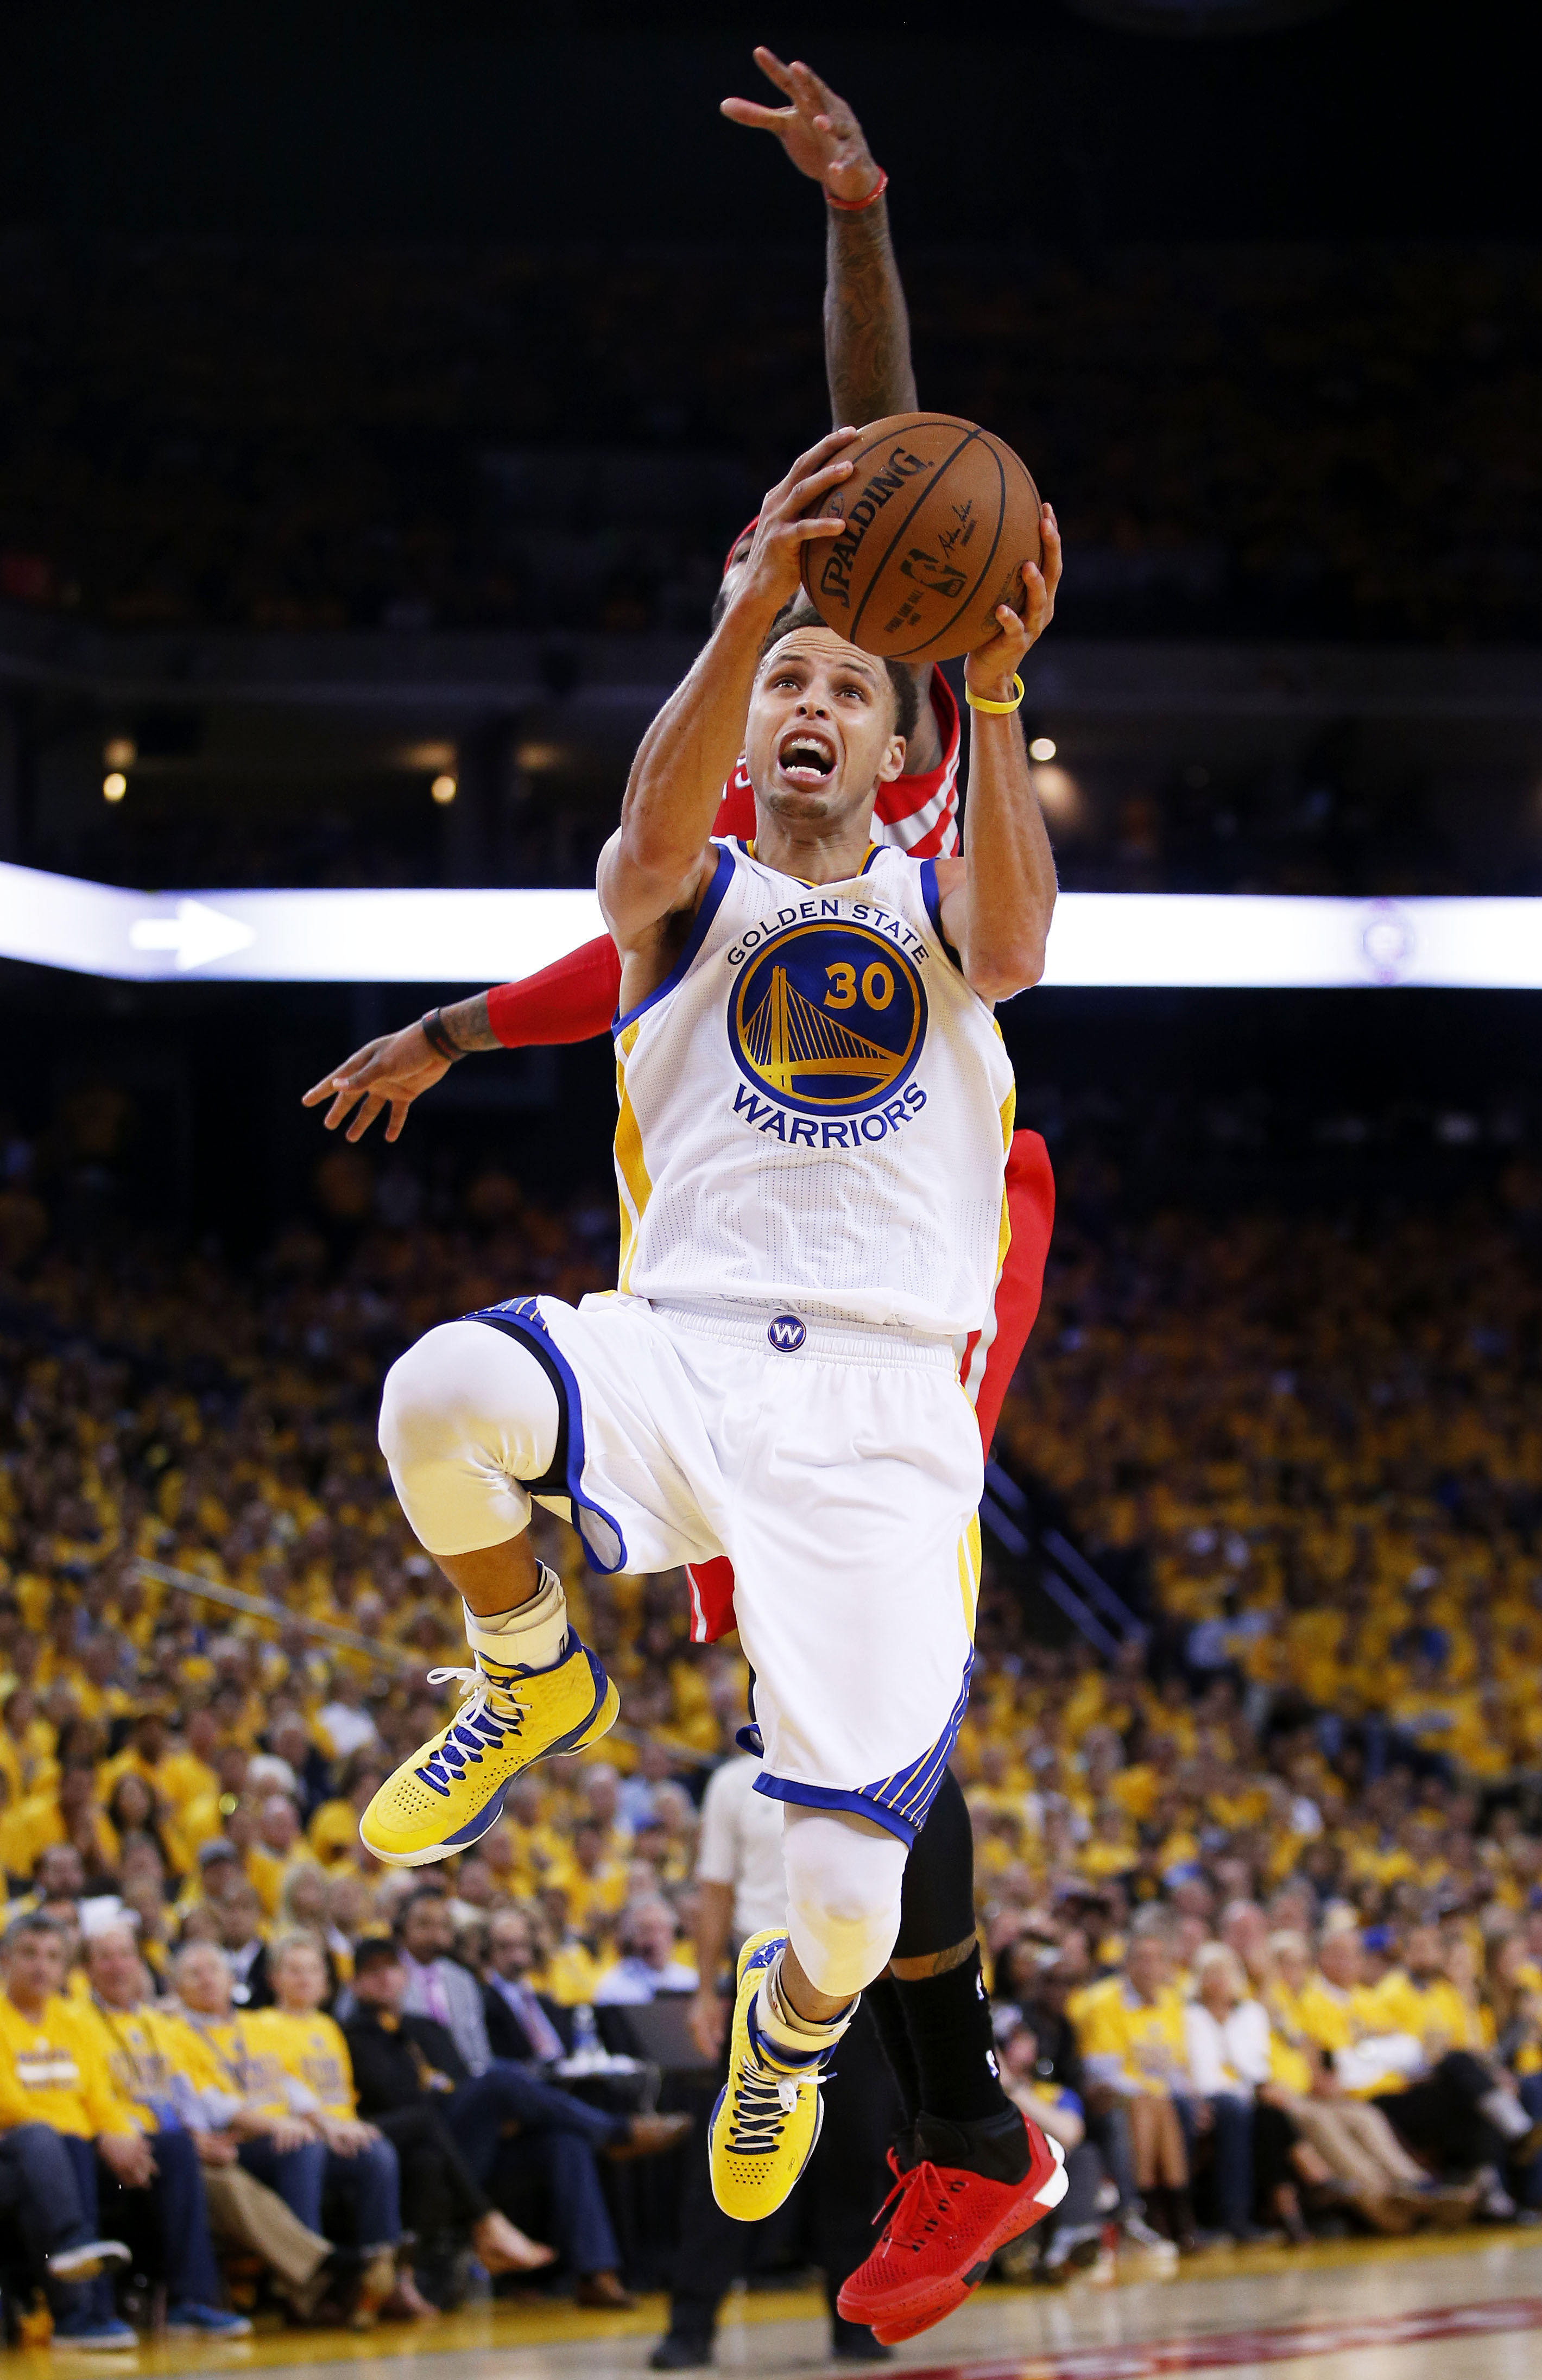 OAKLAND, CA - MAY 19:  Stephen Curry #30 of the Golden State Warriors goes up against Josh Smith #5 of the Houston Rockets in the fourth quarter during Game One of the Western Conference Finals of the 2015 NBA Playoffs at ORACLE Arena on May 19, 2015 in O